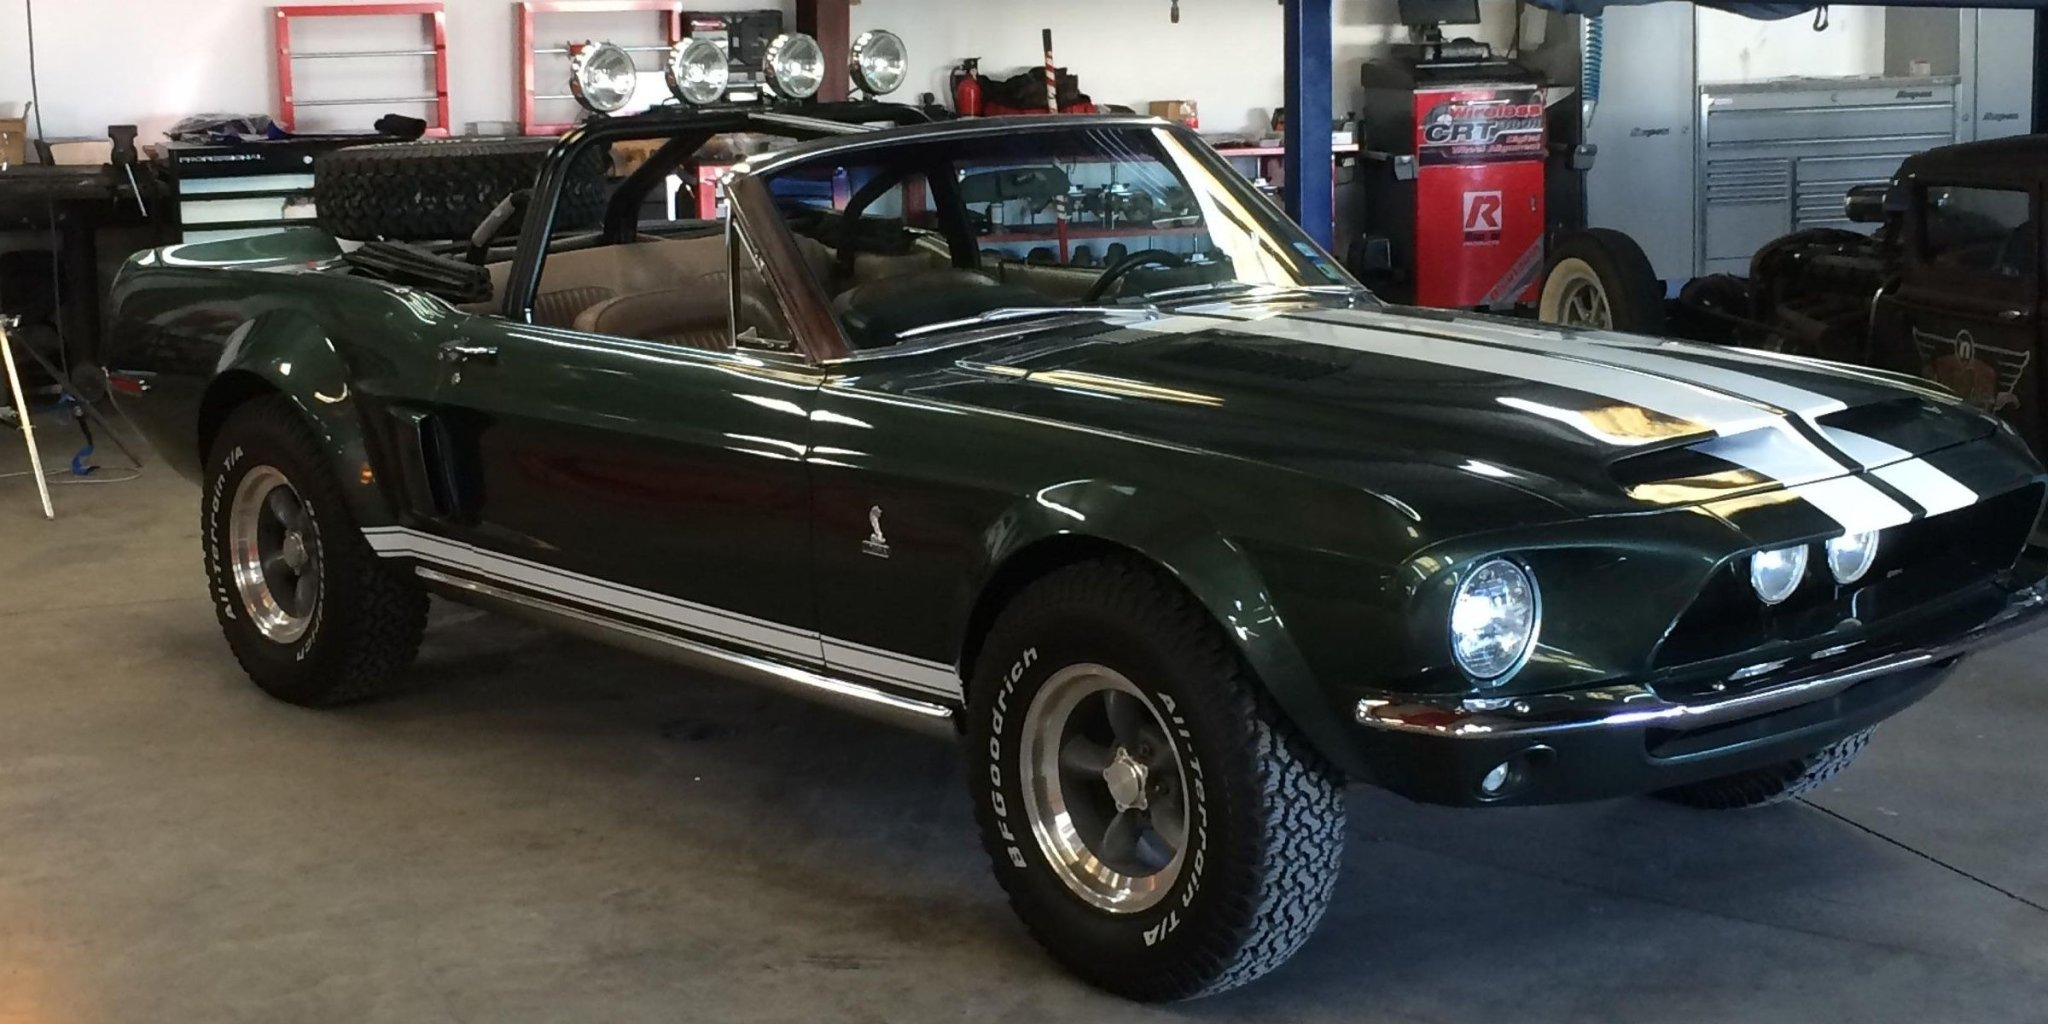 9 Awesome Cars In Richard Rawlings' Collection